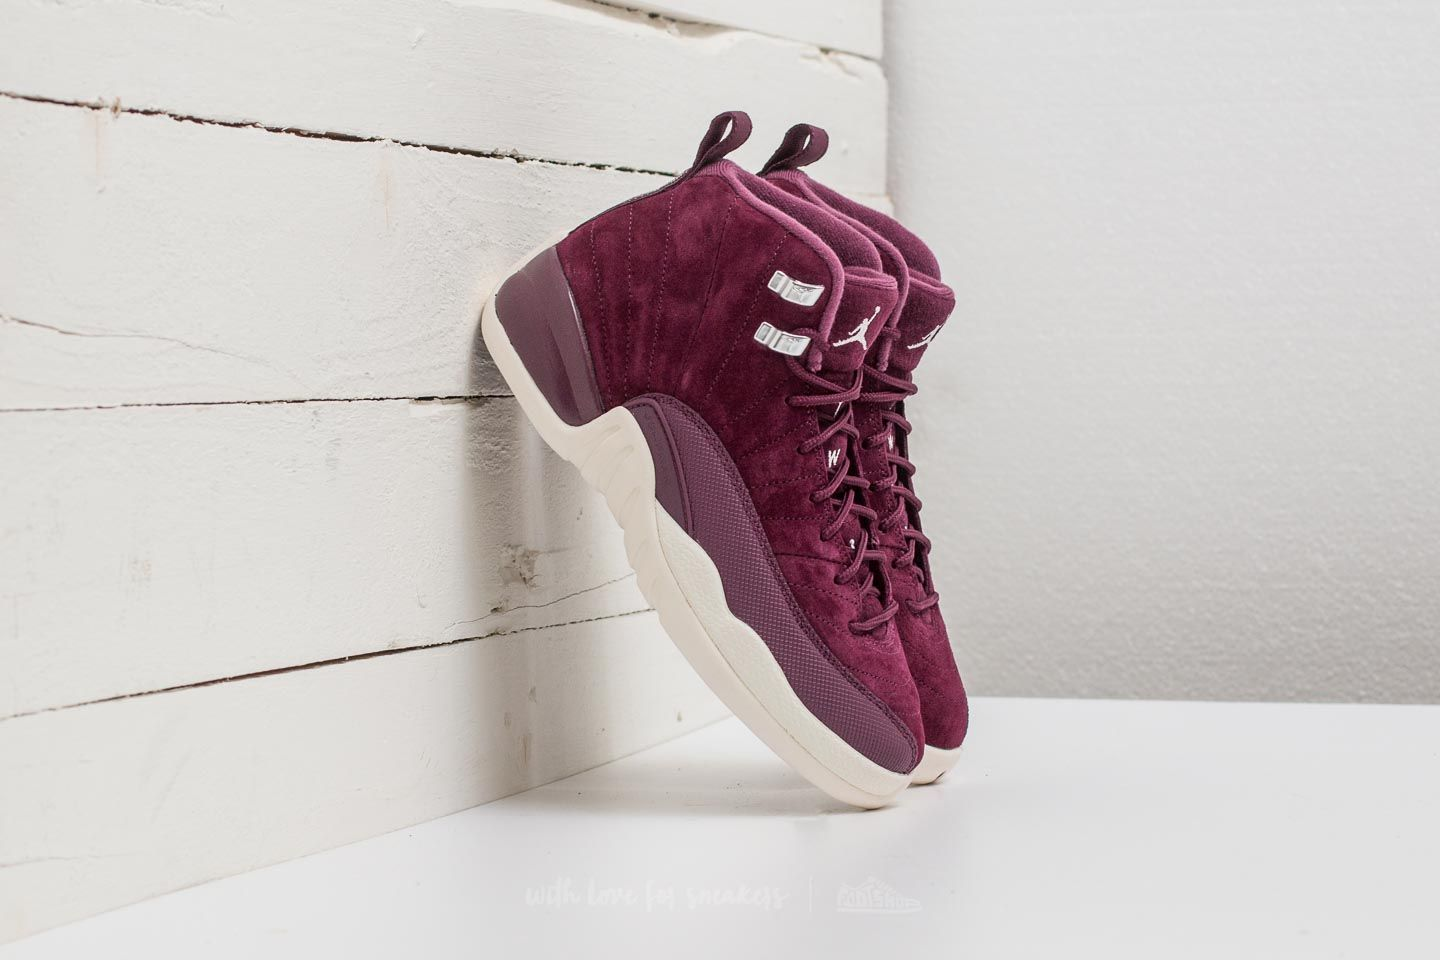 Air Jordan 12 Retro BG Bordeaux/ Sail-Metallic Silver - 21816